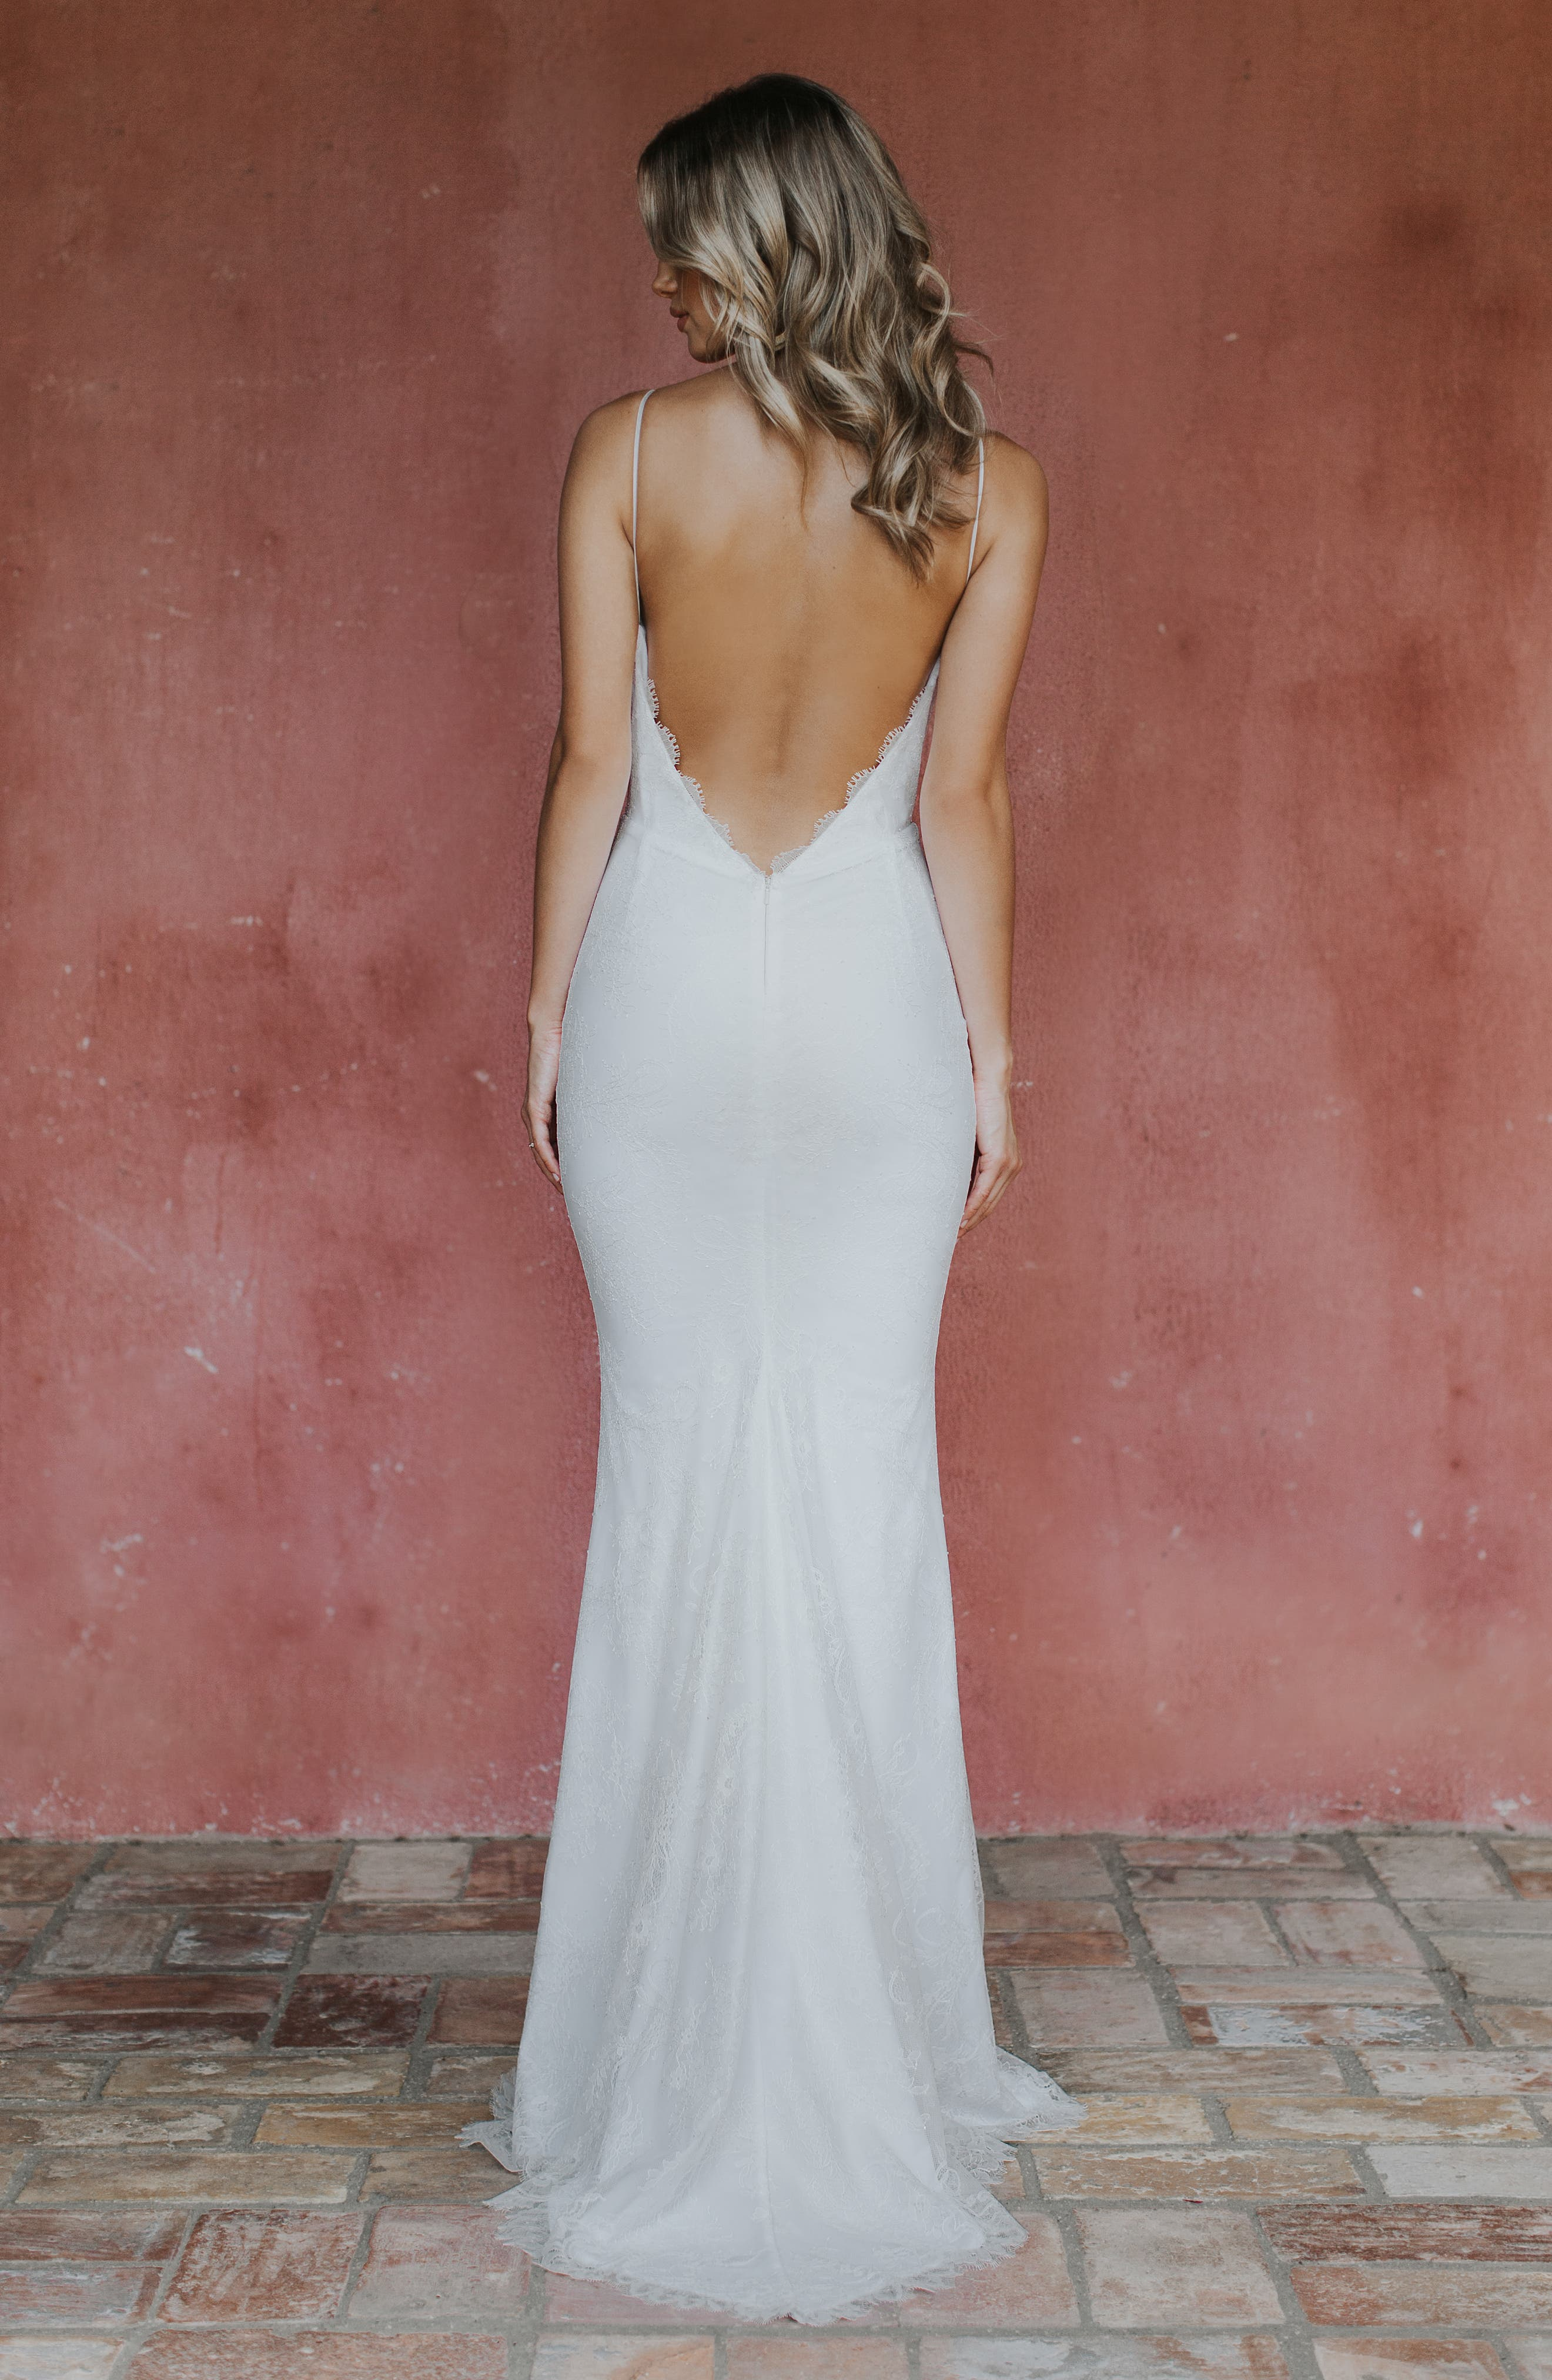 Nike Brand Wedding Dresses